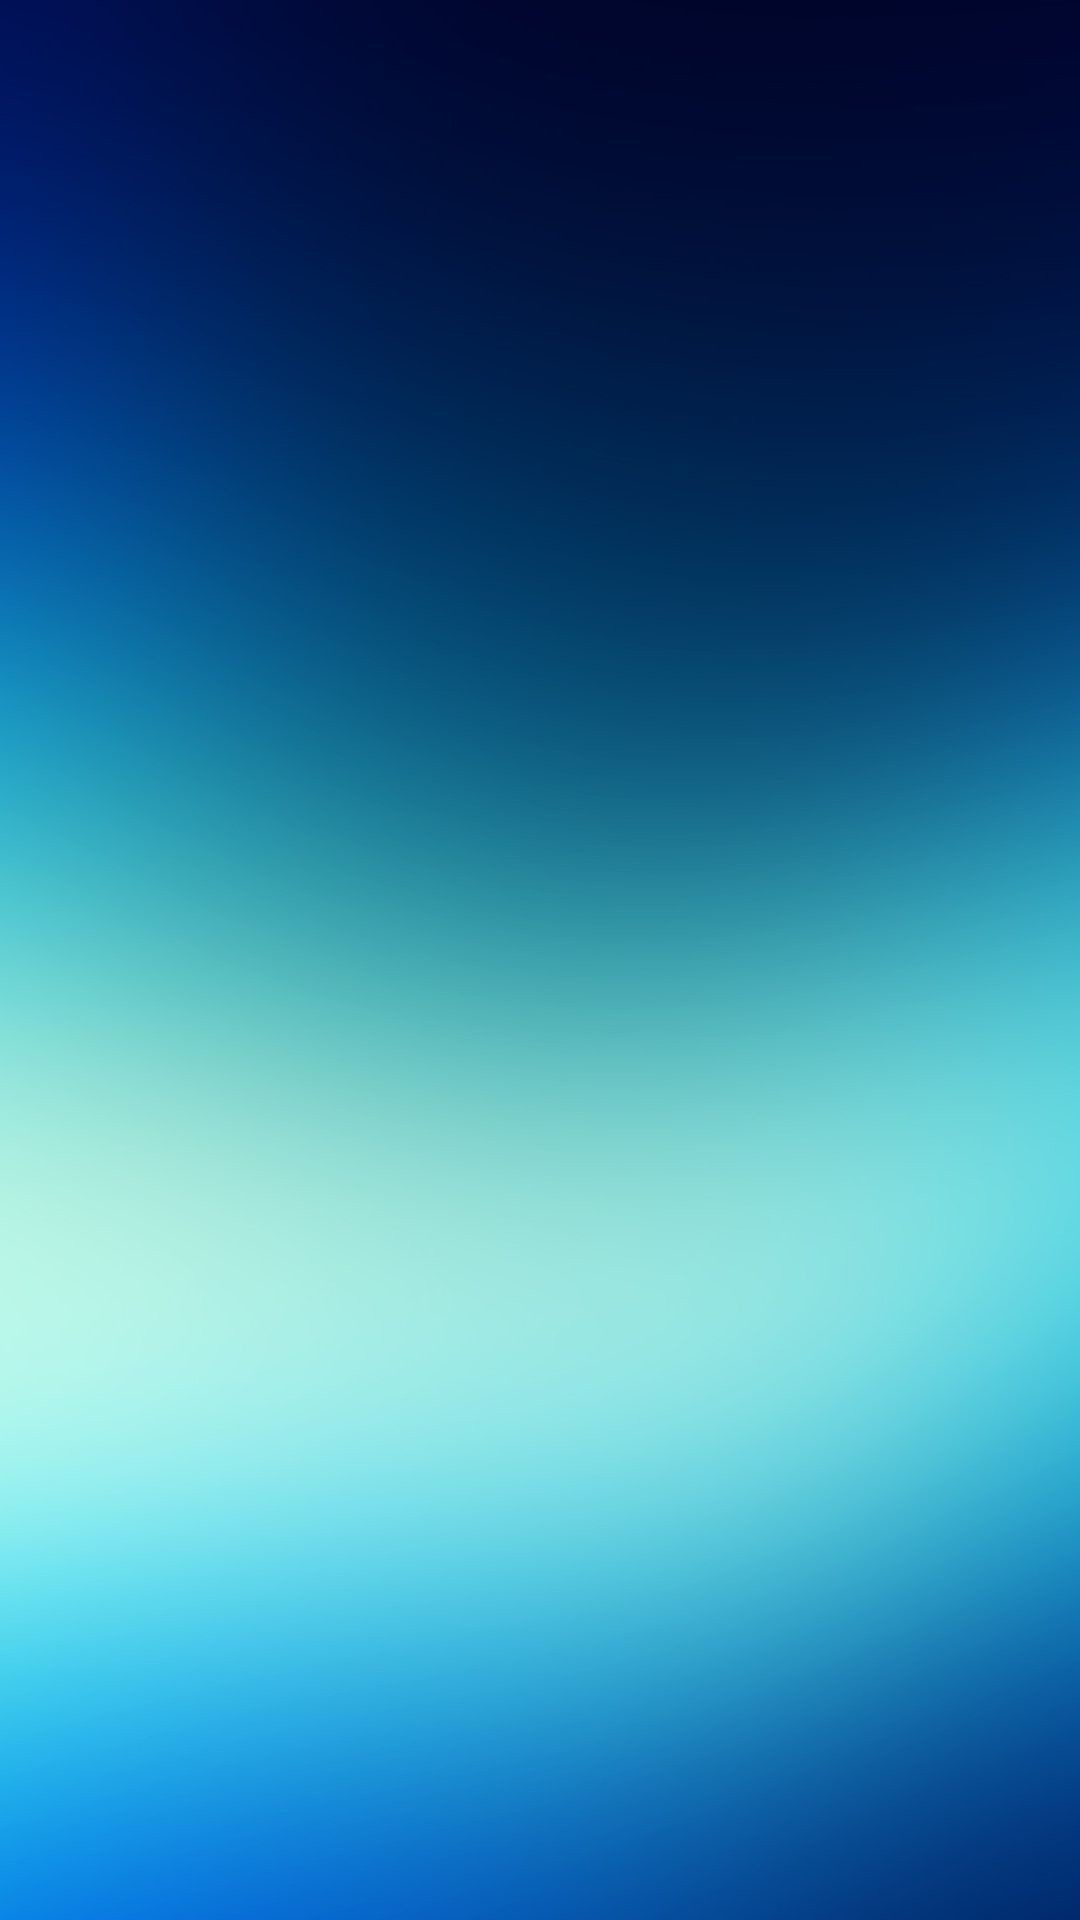 Blue Blur Iphone 6 Plus Wallpaper - Blue Wallpaper Iphone , HD Wallpaper & Backgrounds